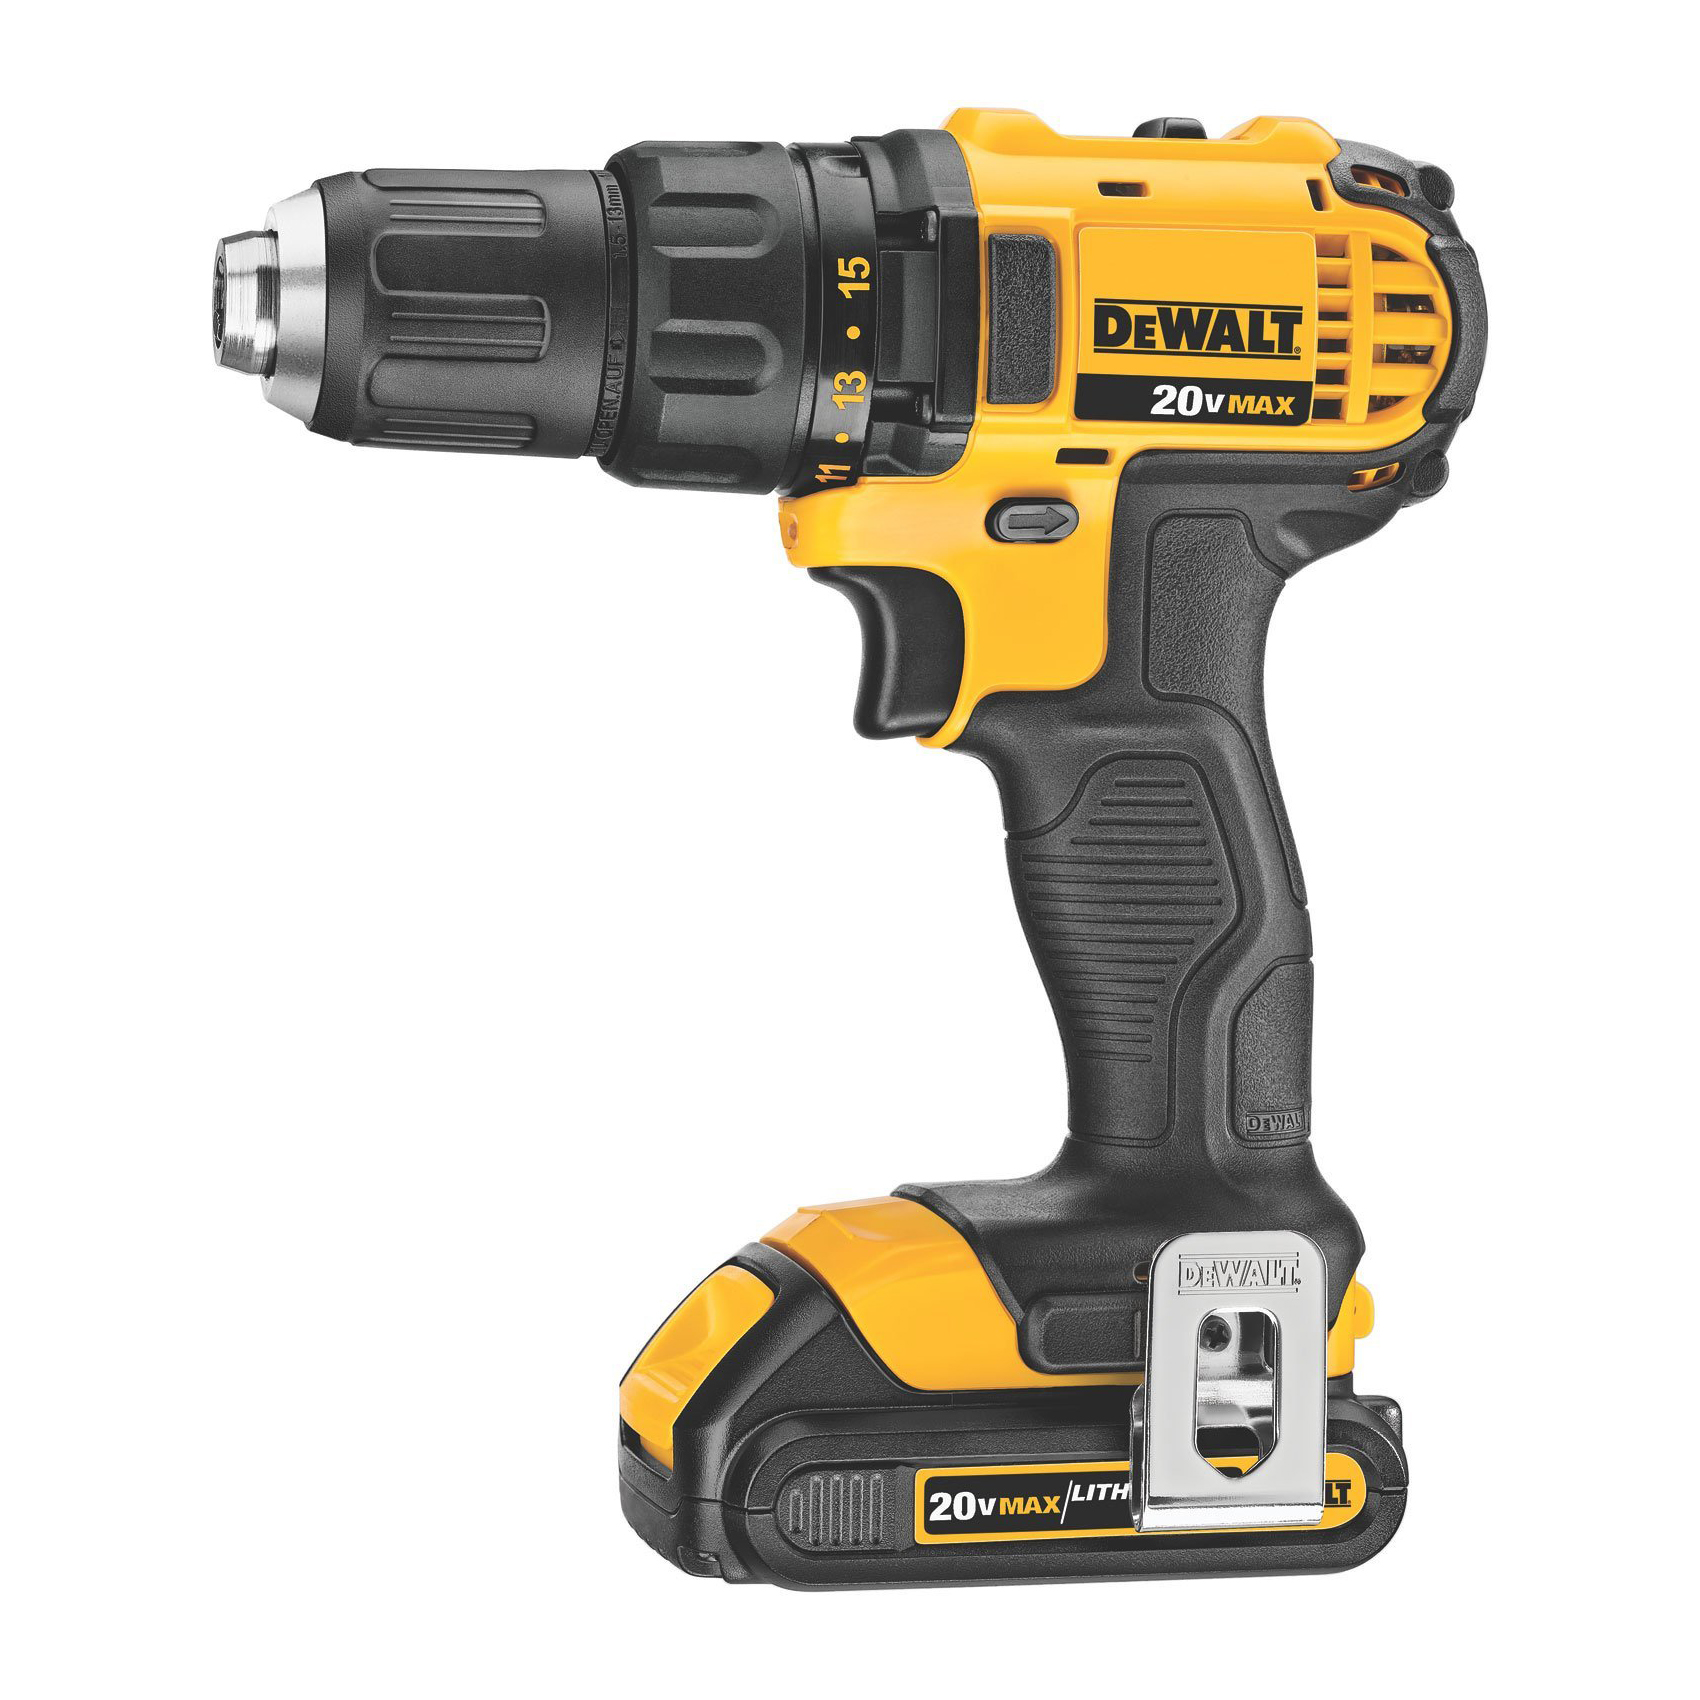 Brilliant Power Tools - Corded And Cordless Power Tools At The Home Depot